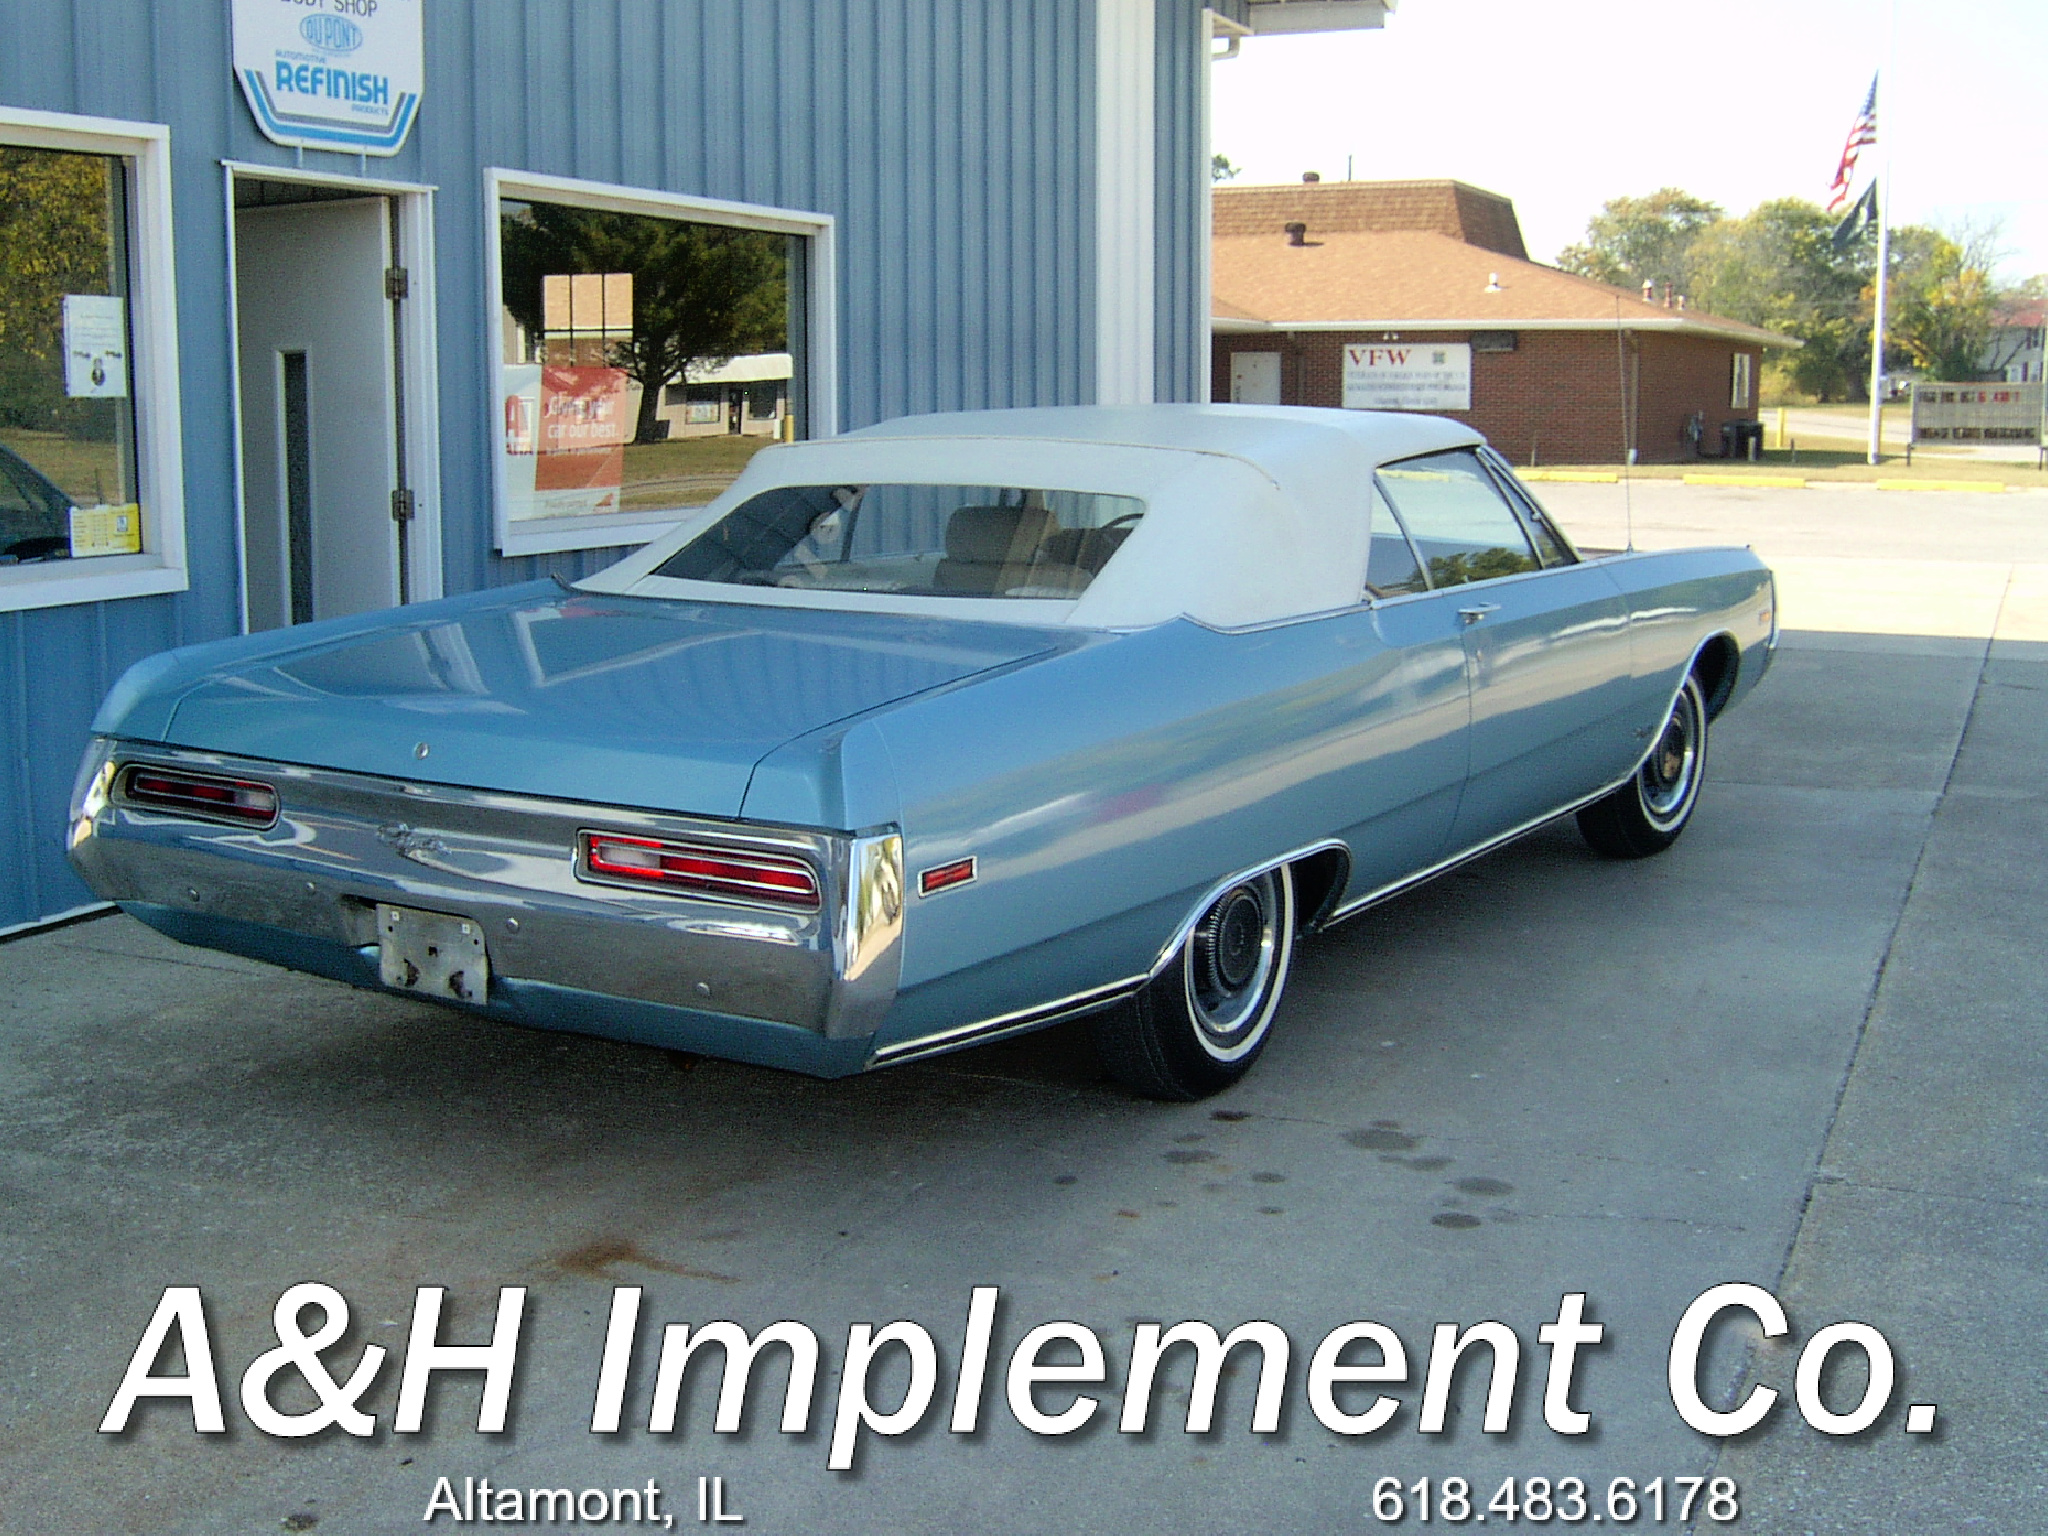 1970 Chrysler Newport Convertible - blue